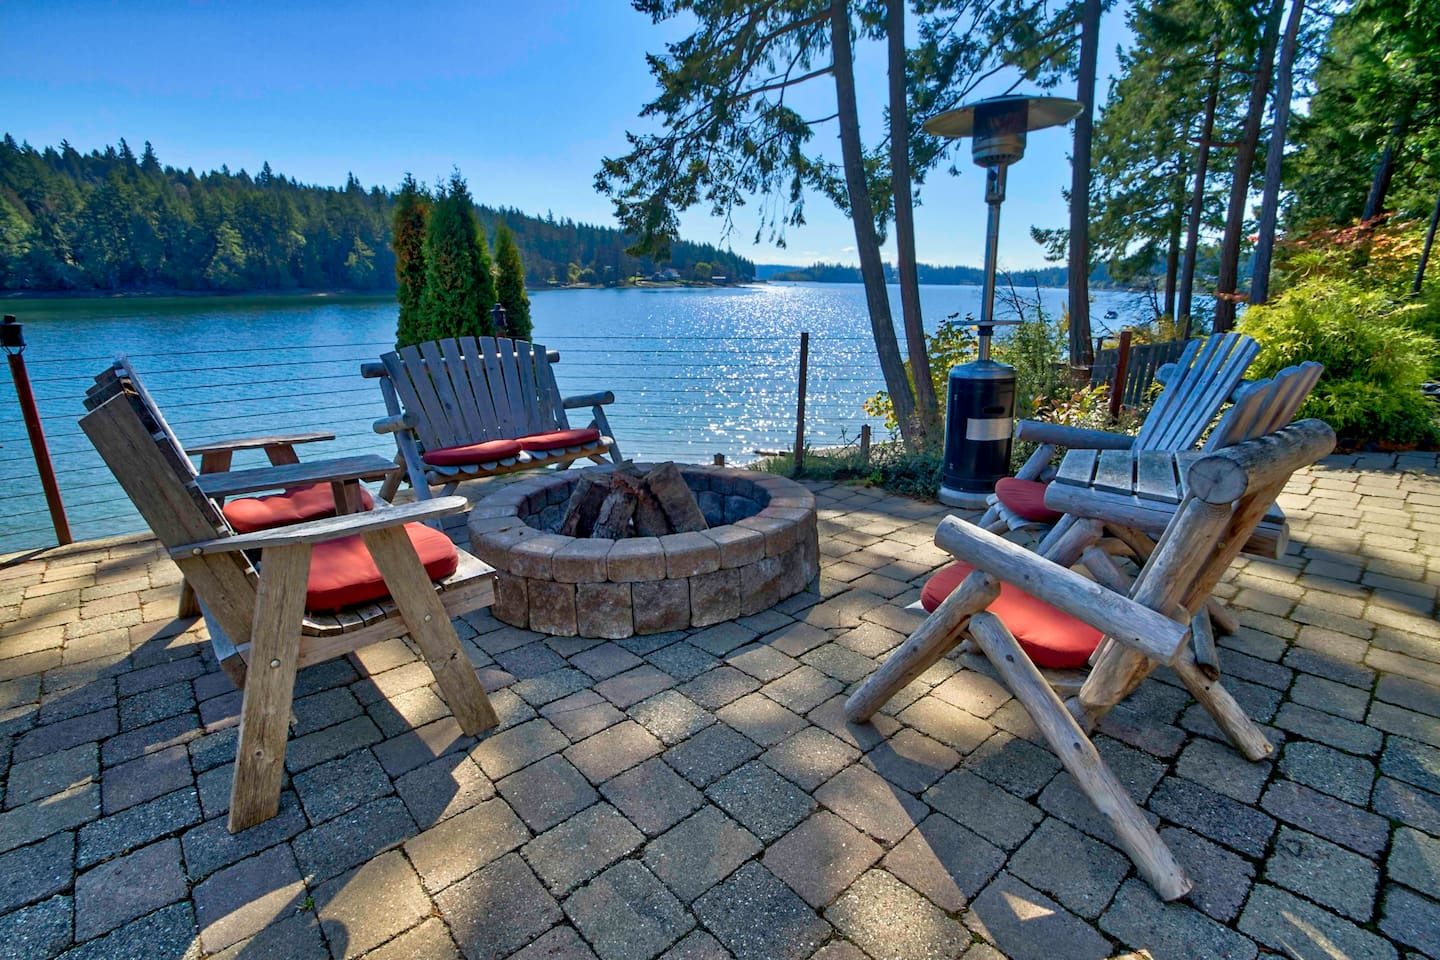 Welcome to B E A U T I F U L Stella Maris where secluded Filucy Bay is your bonfire companion!